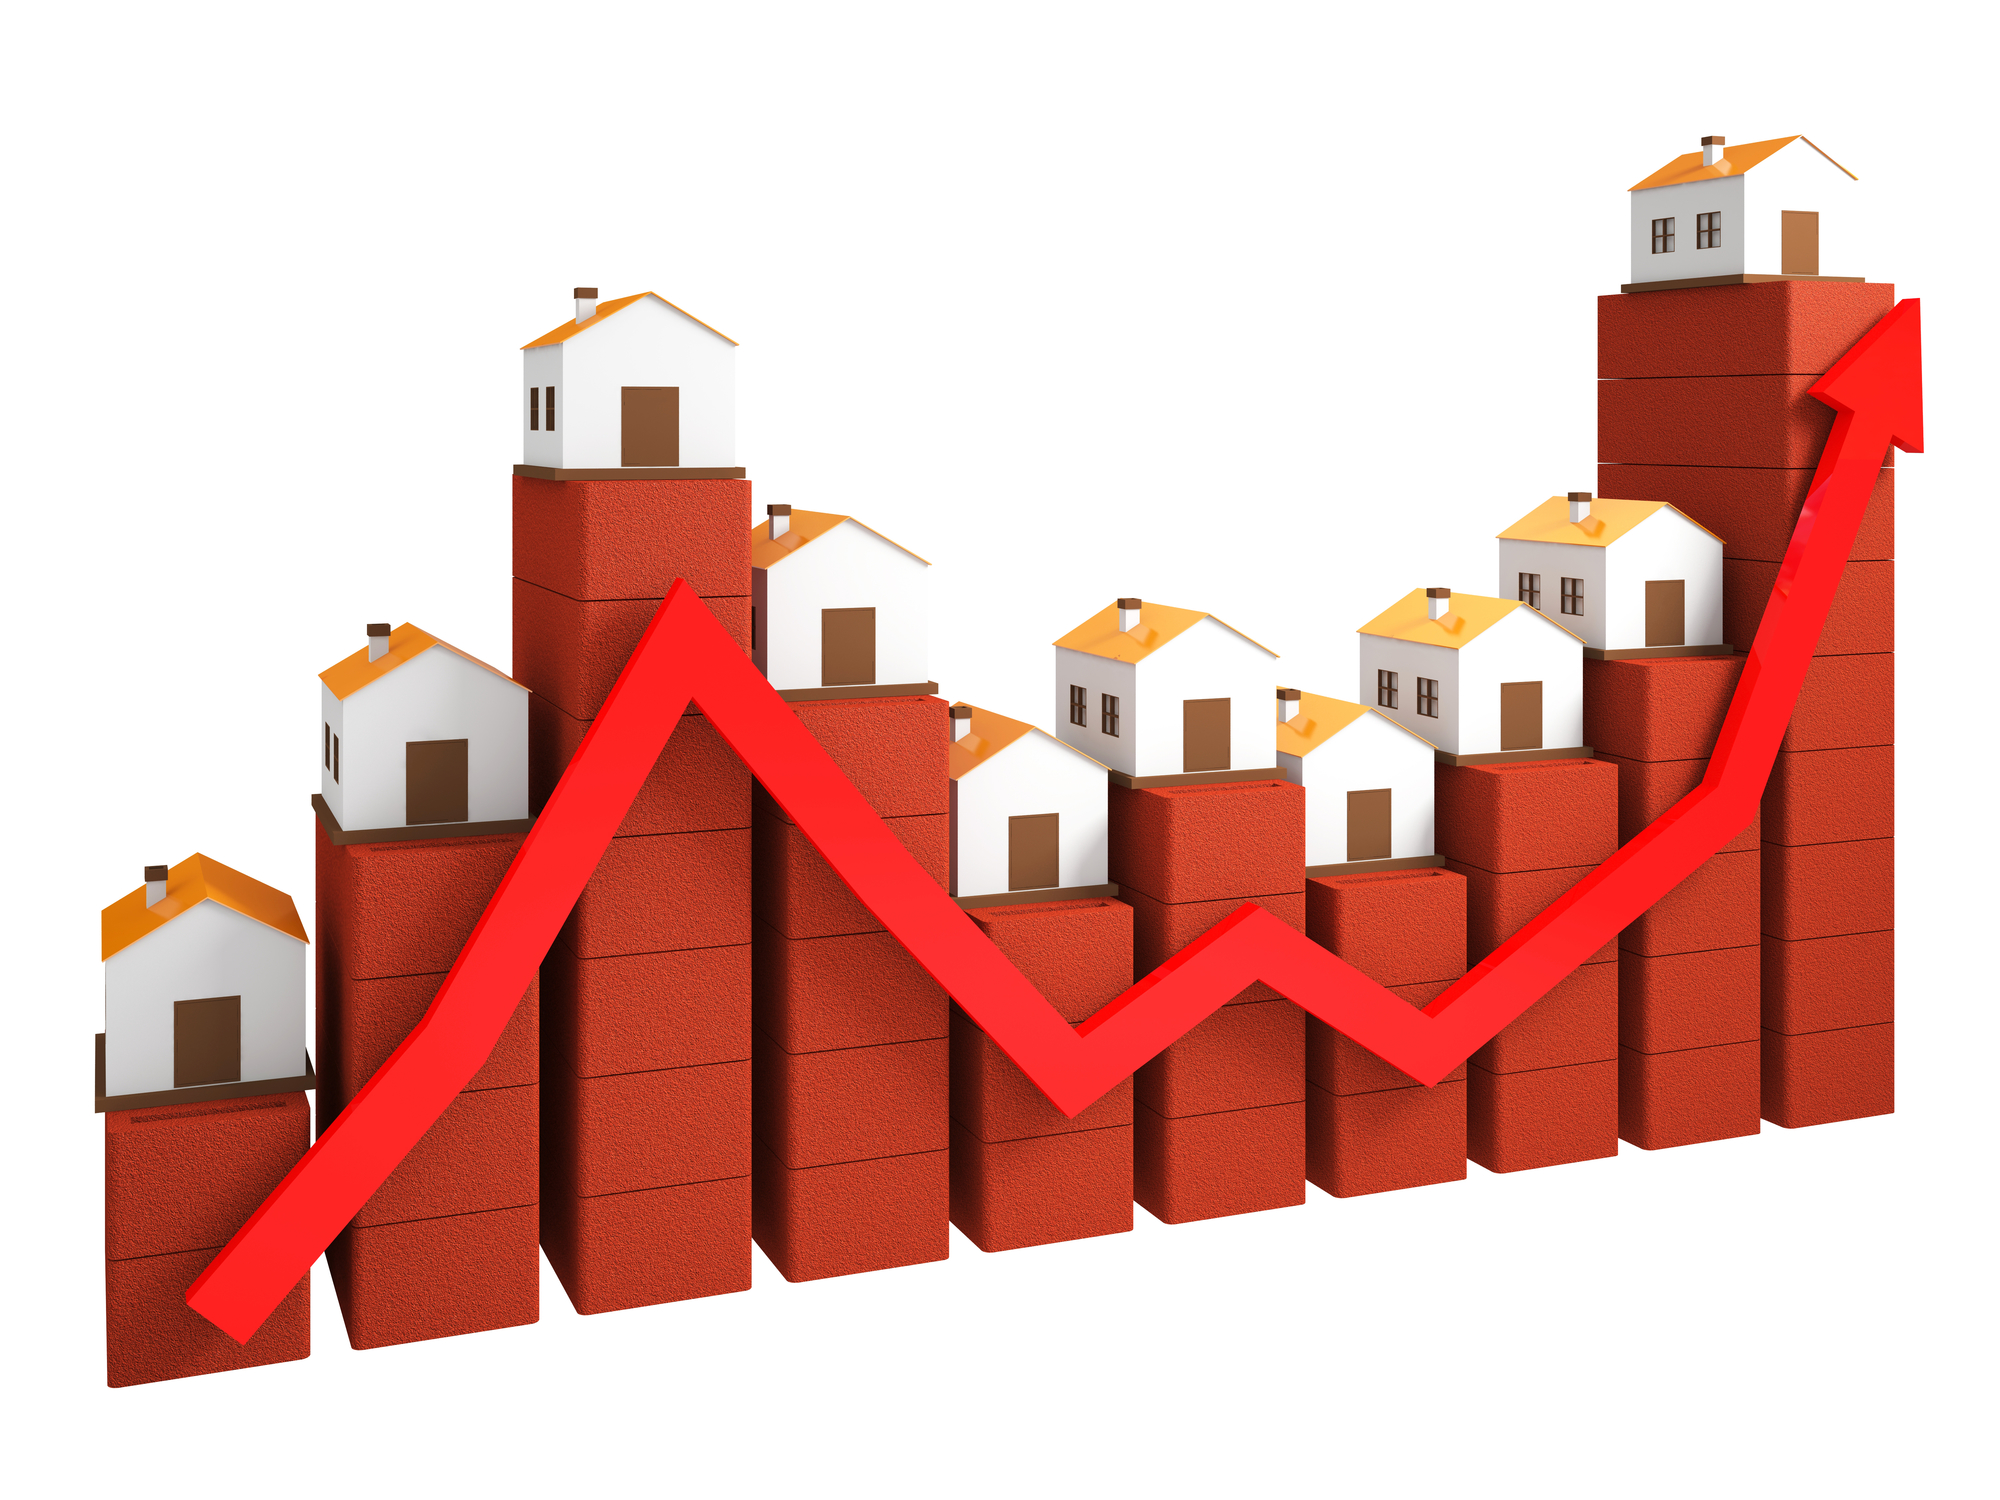 Prices for real estate houses on top of bar and line graph